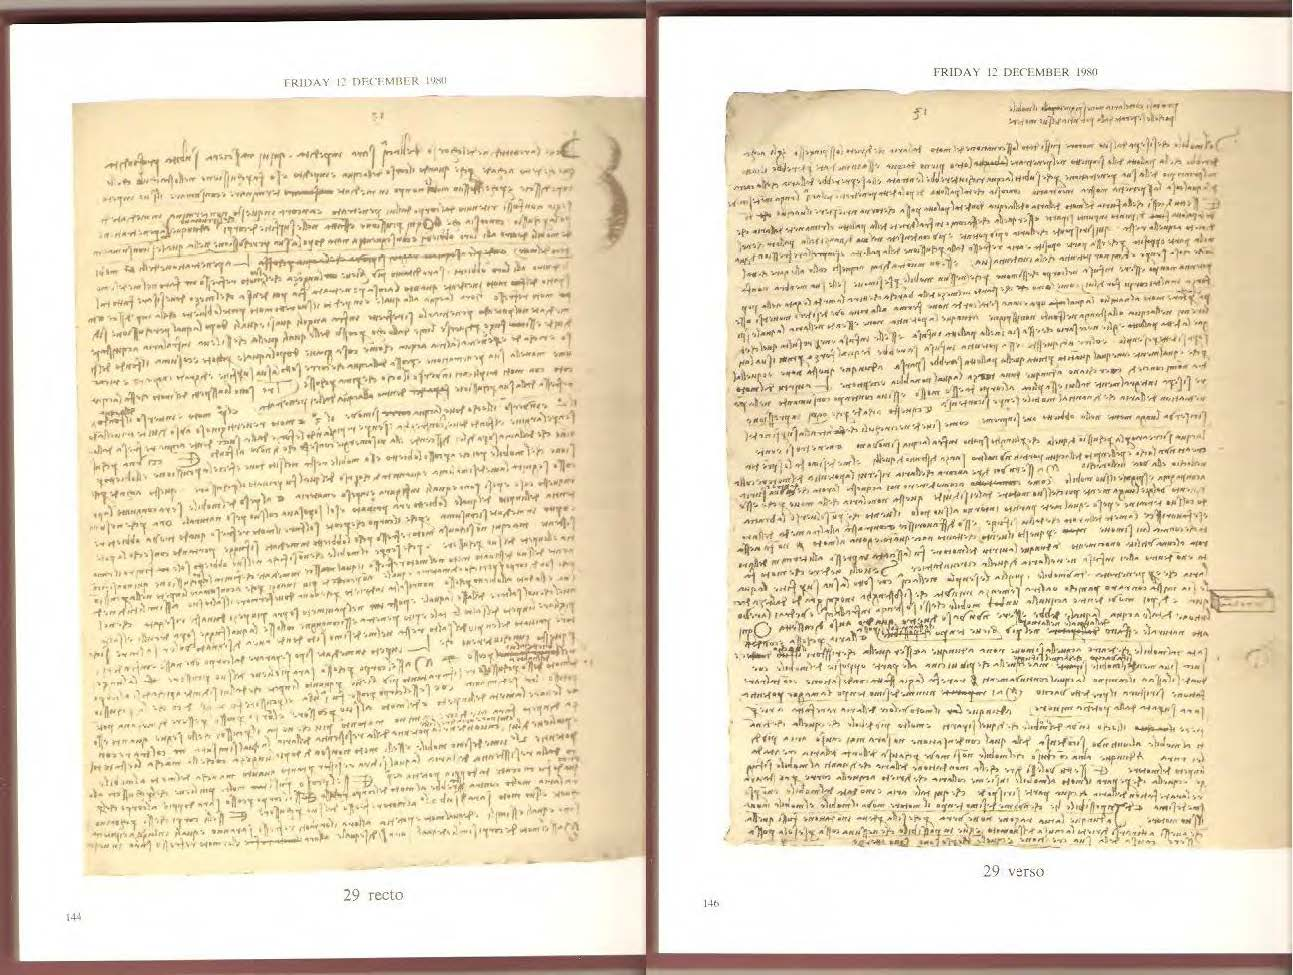 Codex_Leicester_Page_29_Image_0001.jpg